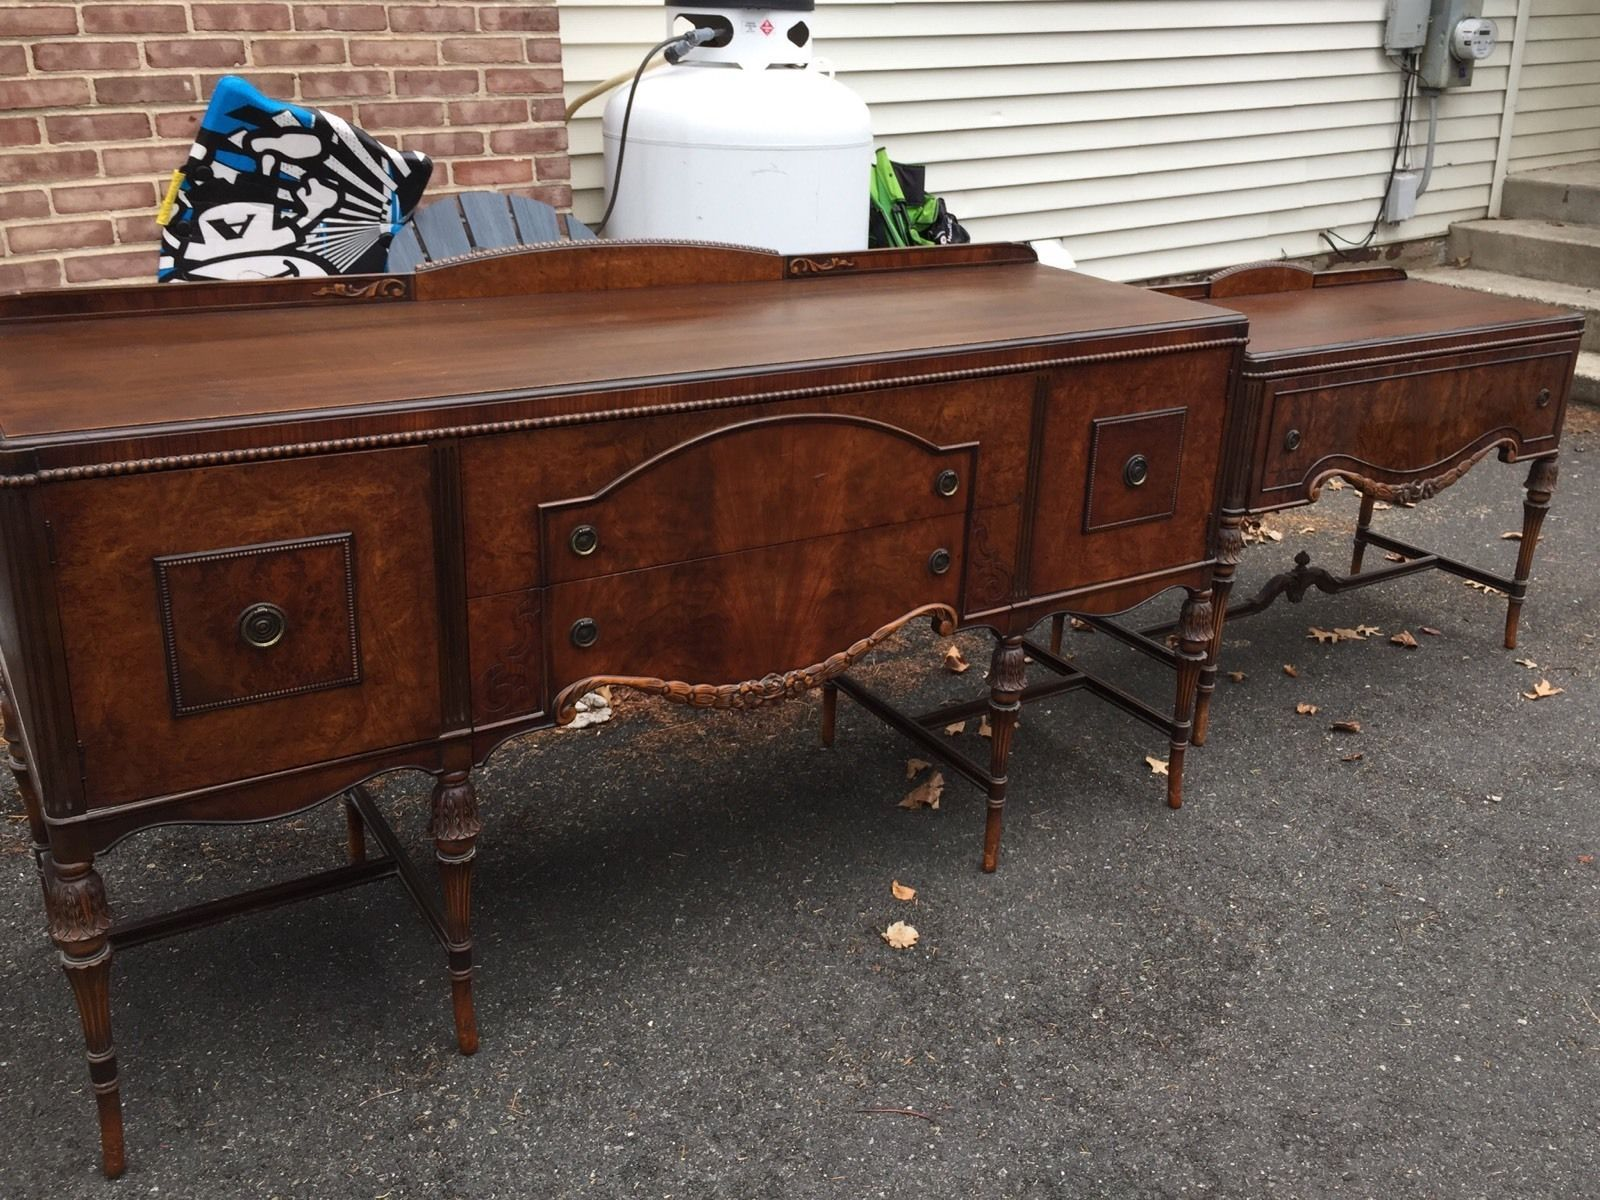 BERKEY GAY ANTIQUE MAHOGANY DETAILED BUFFET SERVER VERY GOOD CONDITION In Antiques BuffetsAntiquesBuffet ServerRoomEbaySideboard